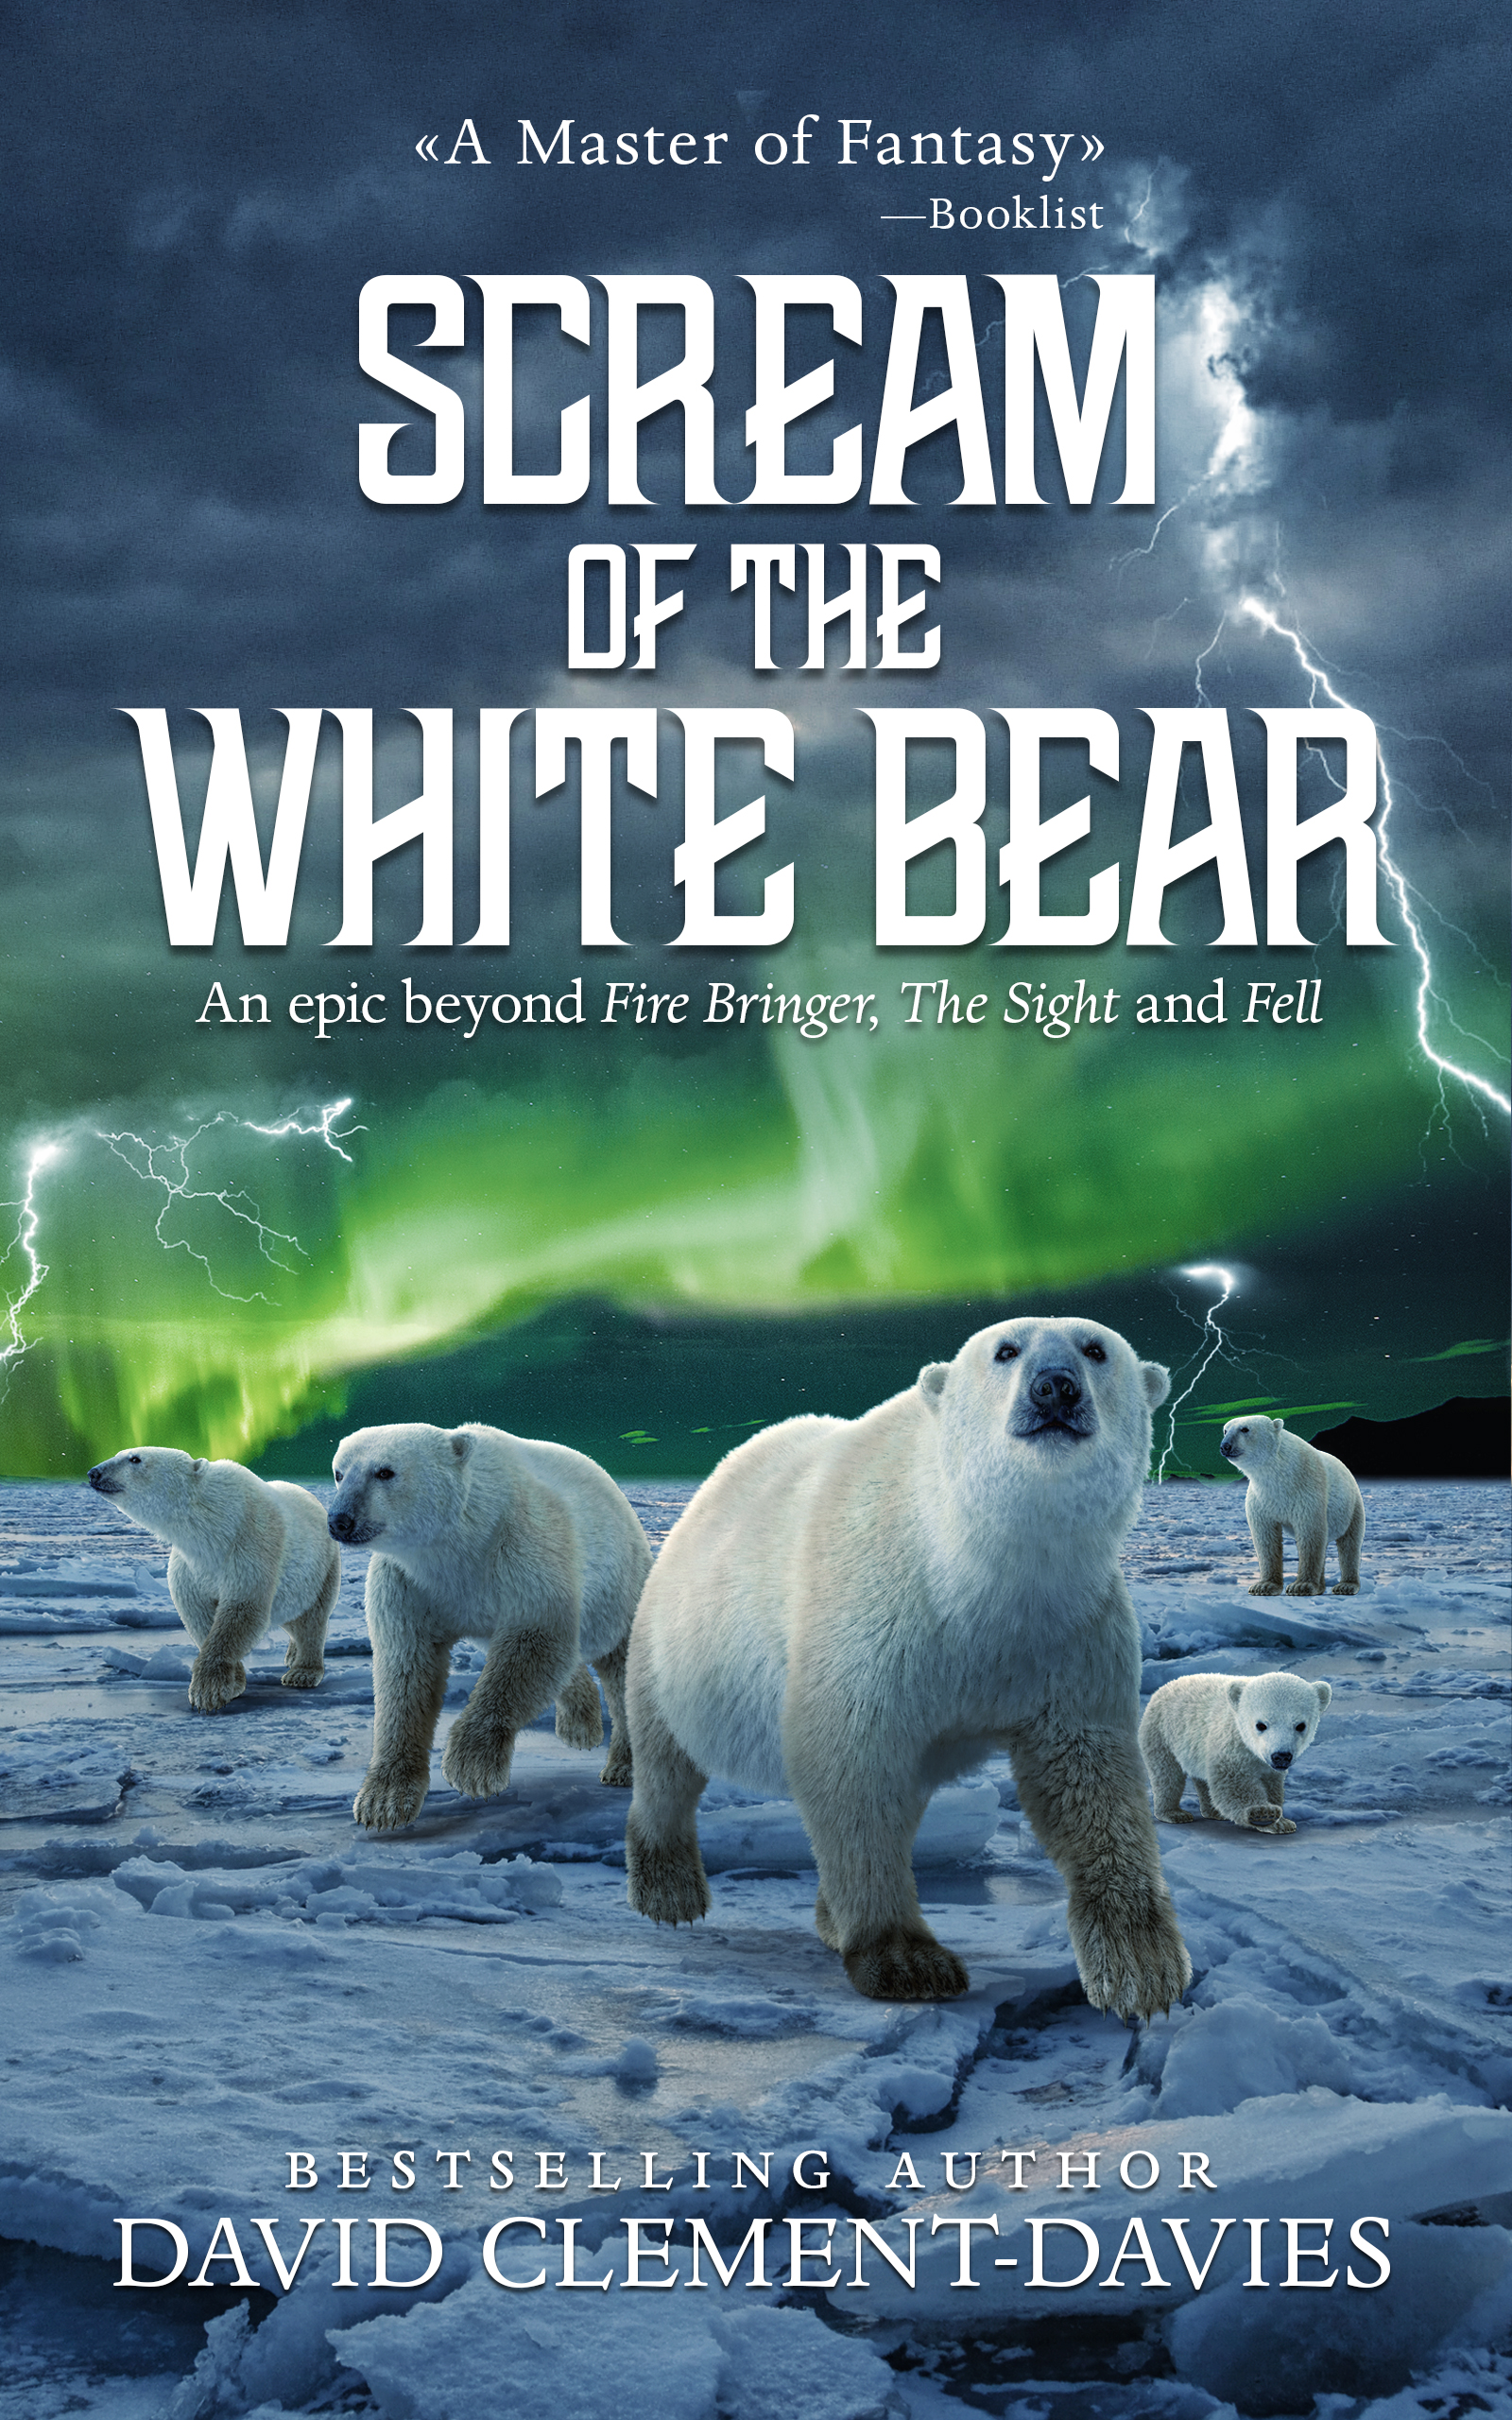 Scream_of_the_White_Bear_Kindle (1)